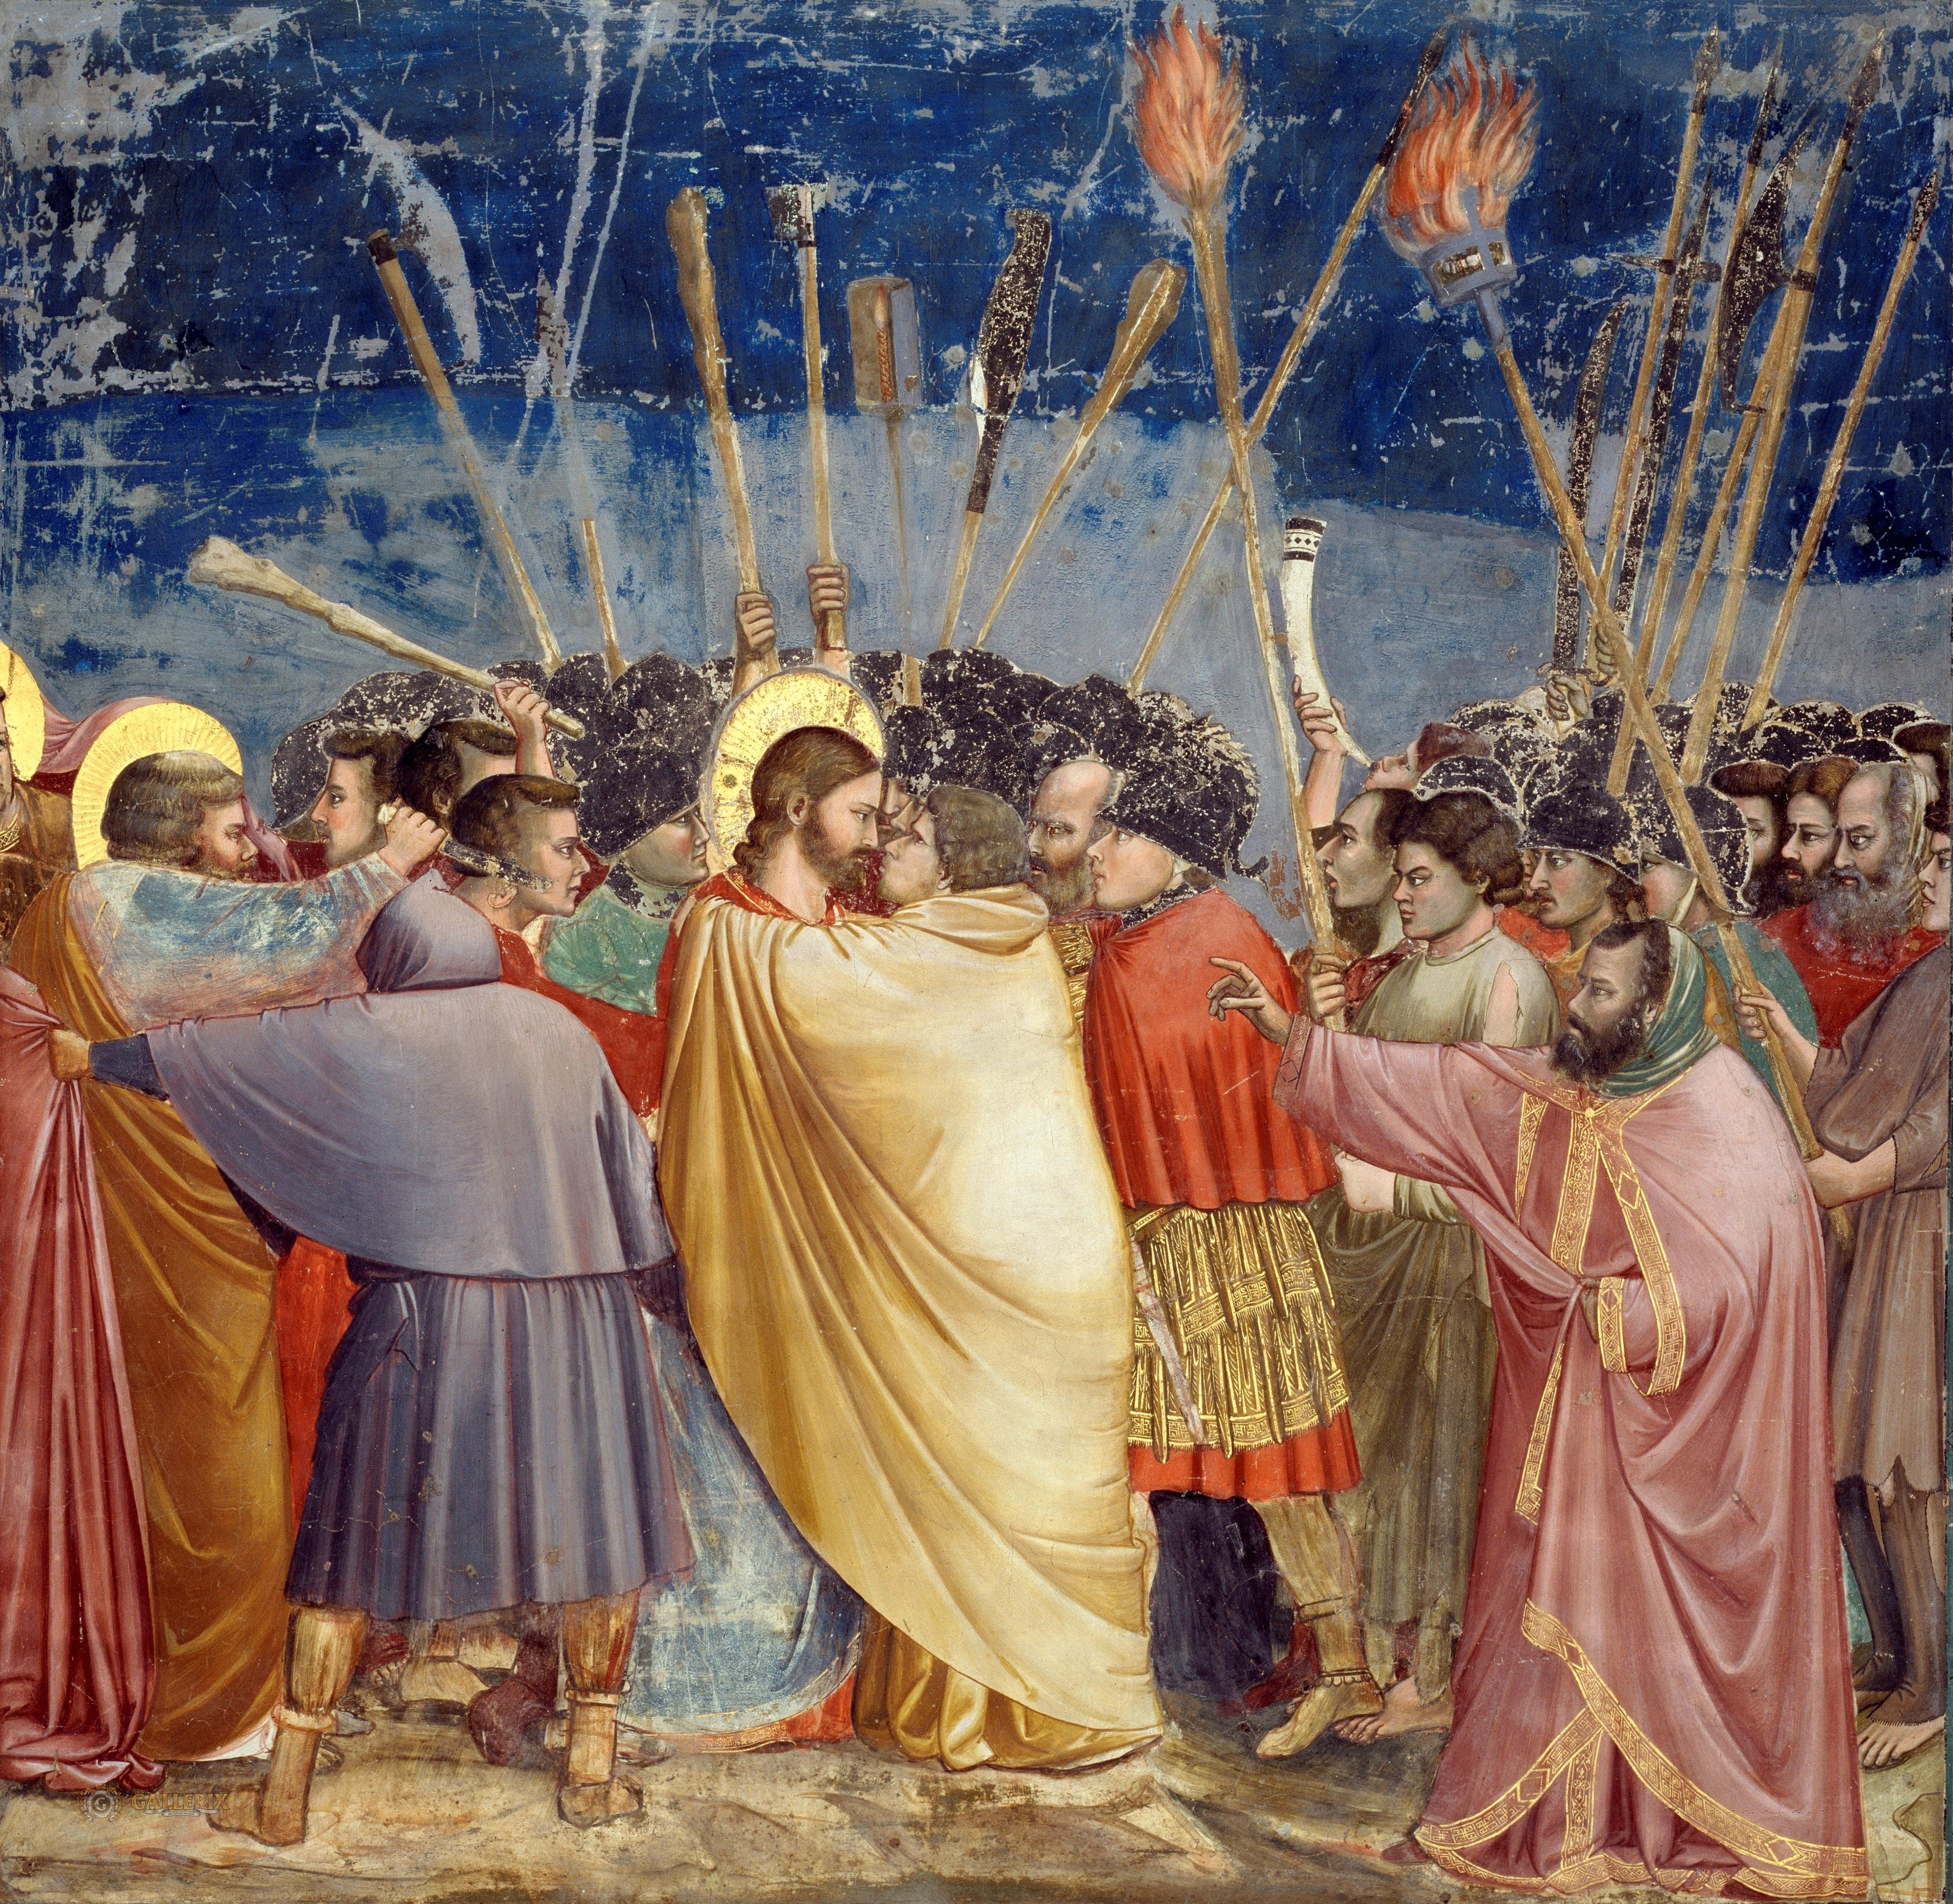 File:Giotto - Scrovegni - -31- - Kiss of Judas.jpg - Wikipedia ...